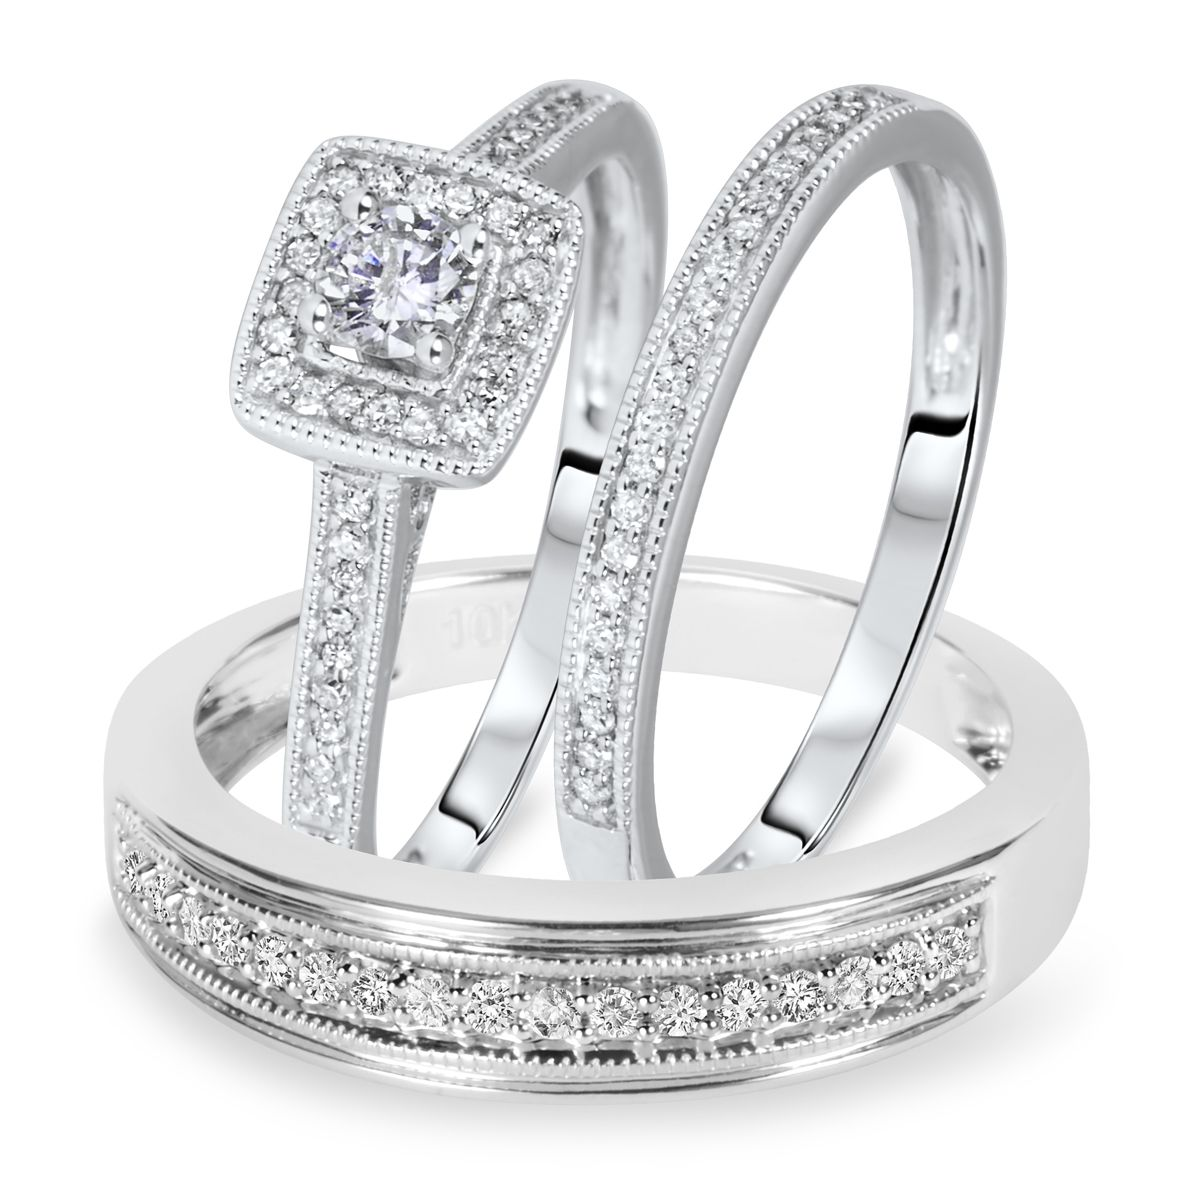 12 Carat TW Round Cut Diamond Matching Trio Wedding Ring Set 14K